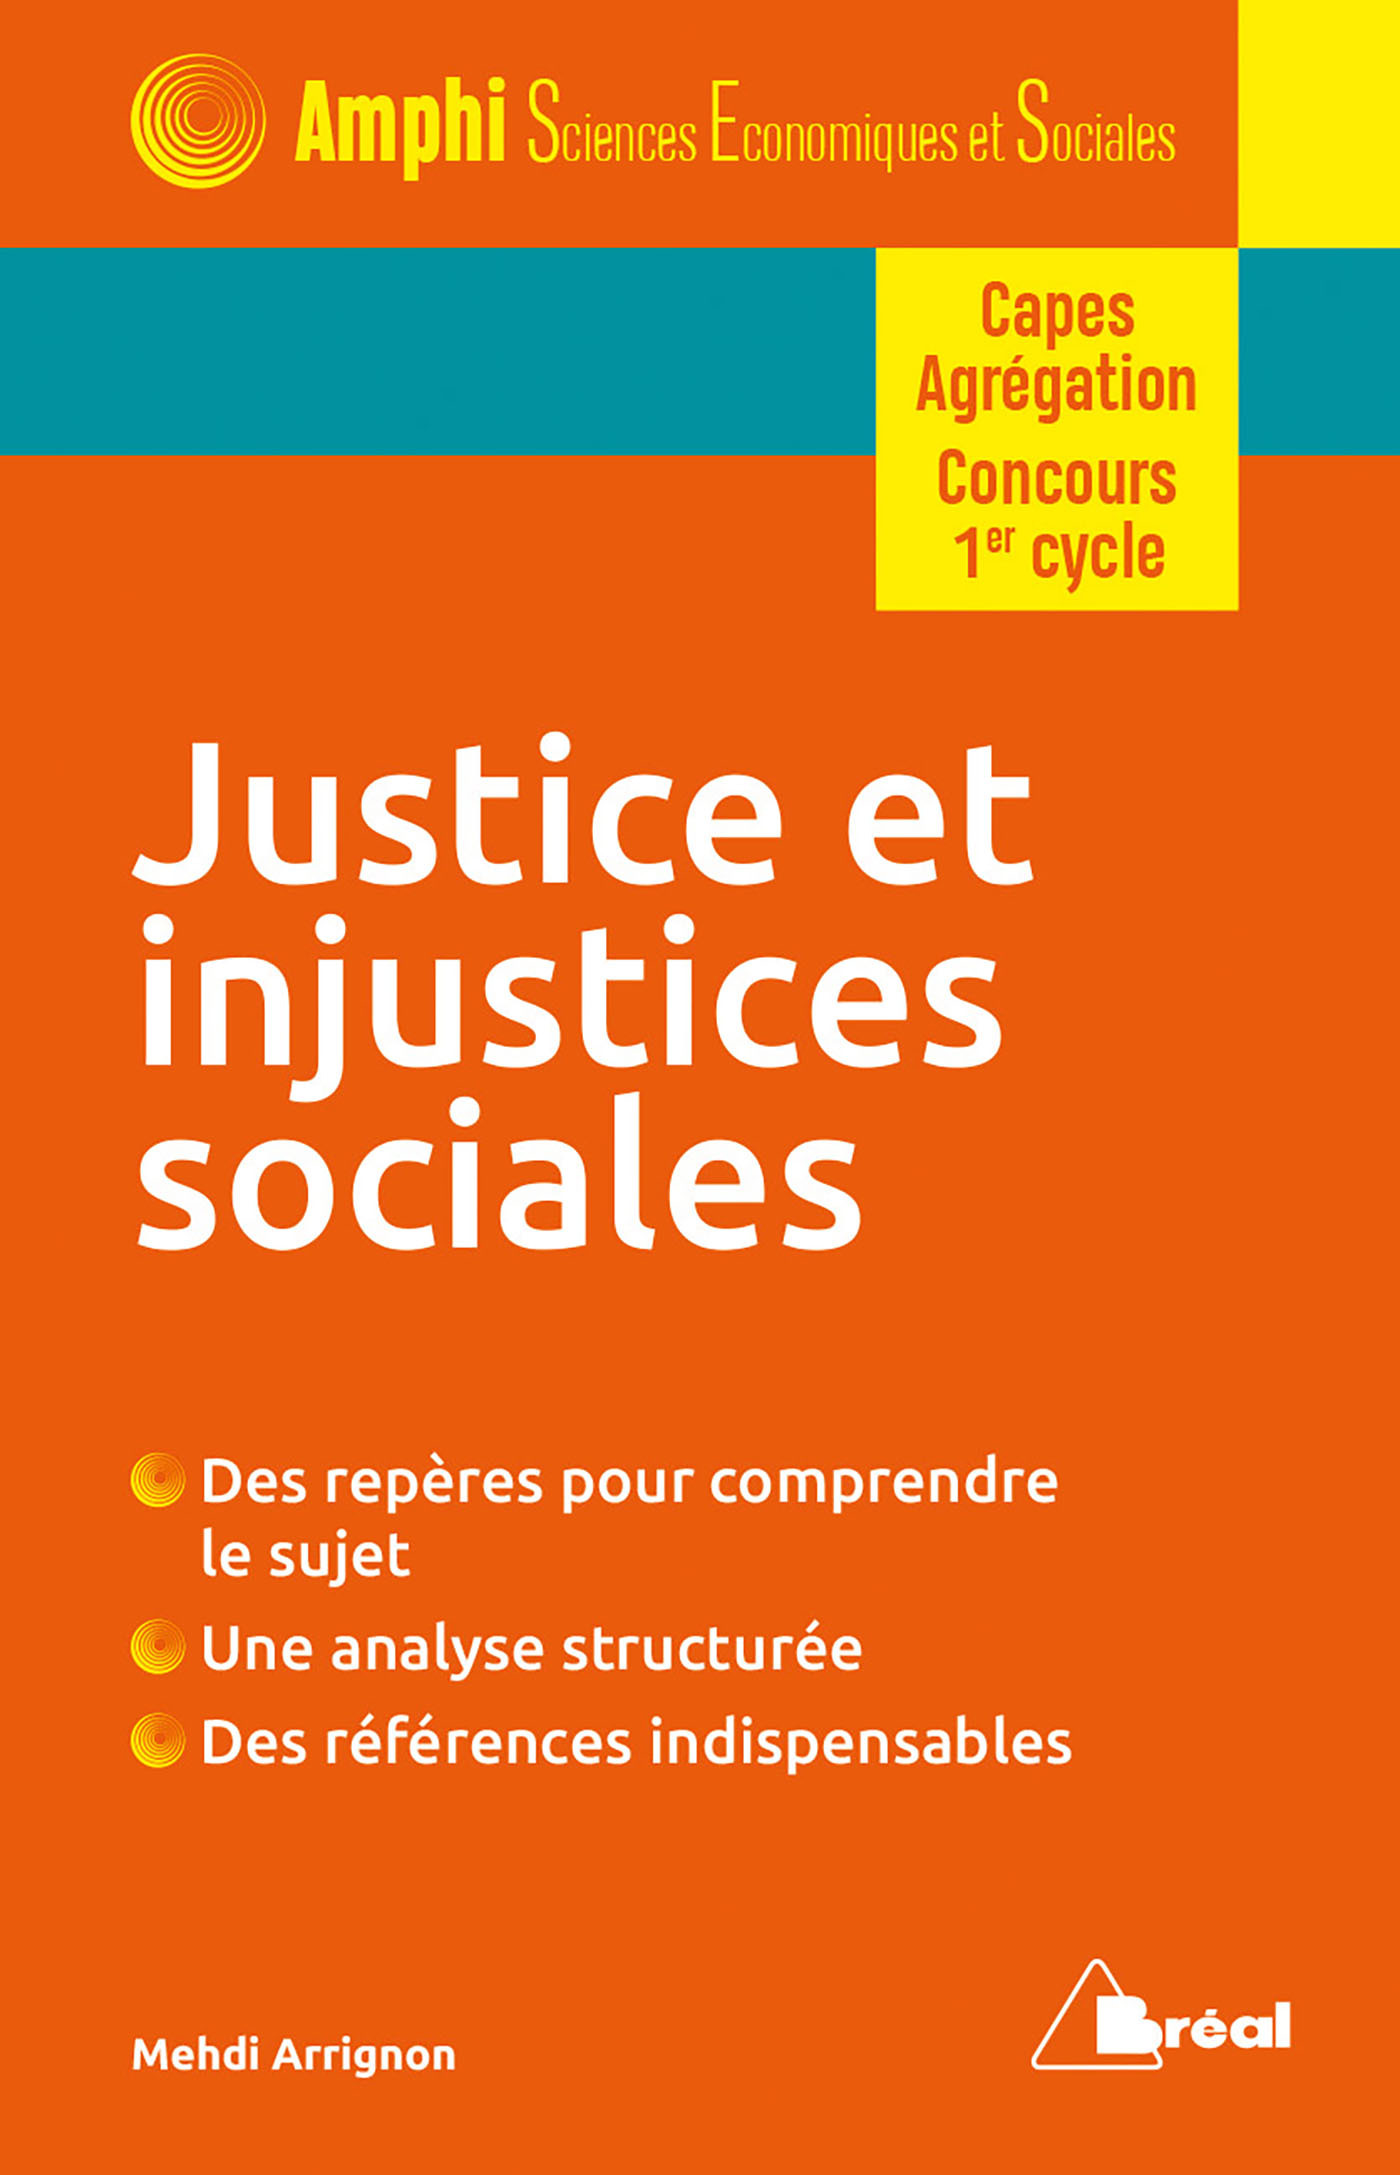 JUSTICE ET INJUSTICES SOCIALES